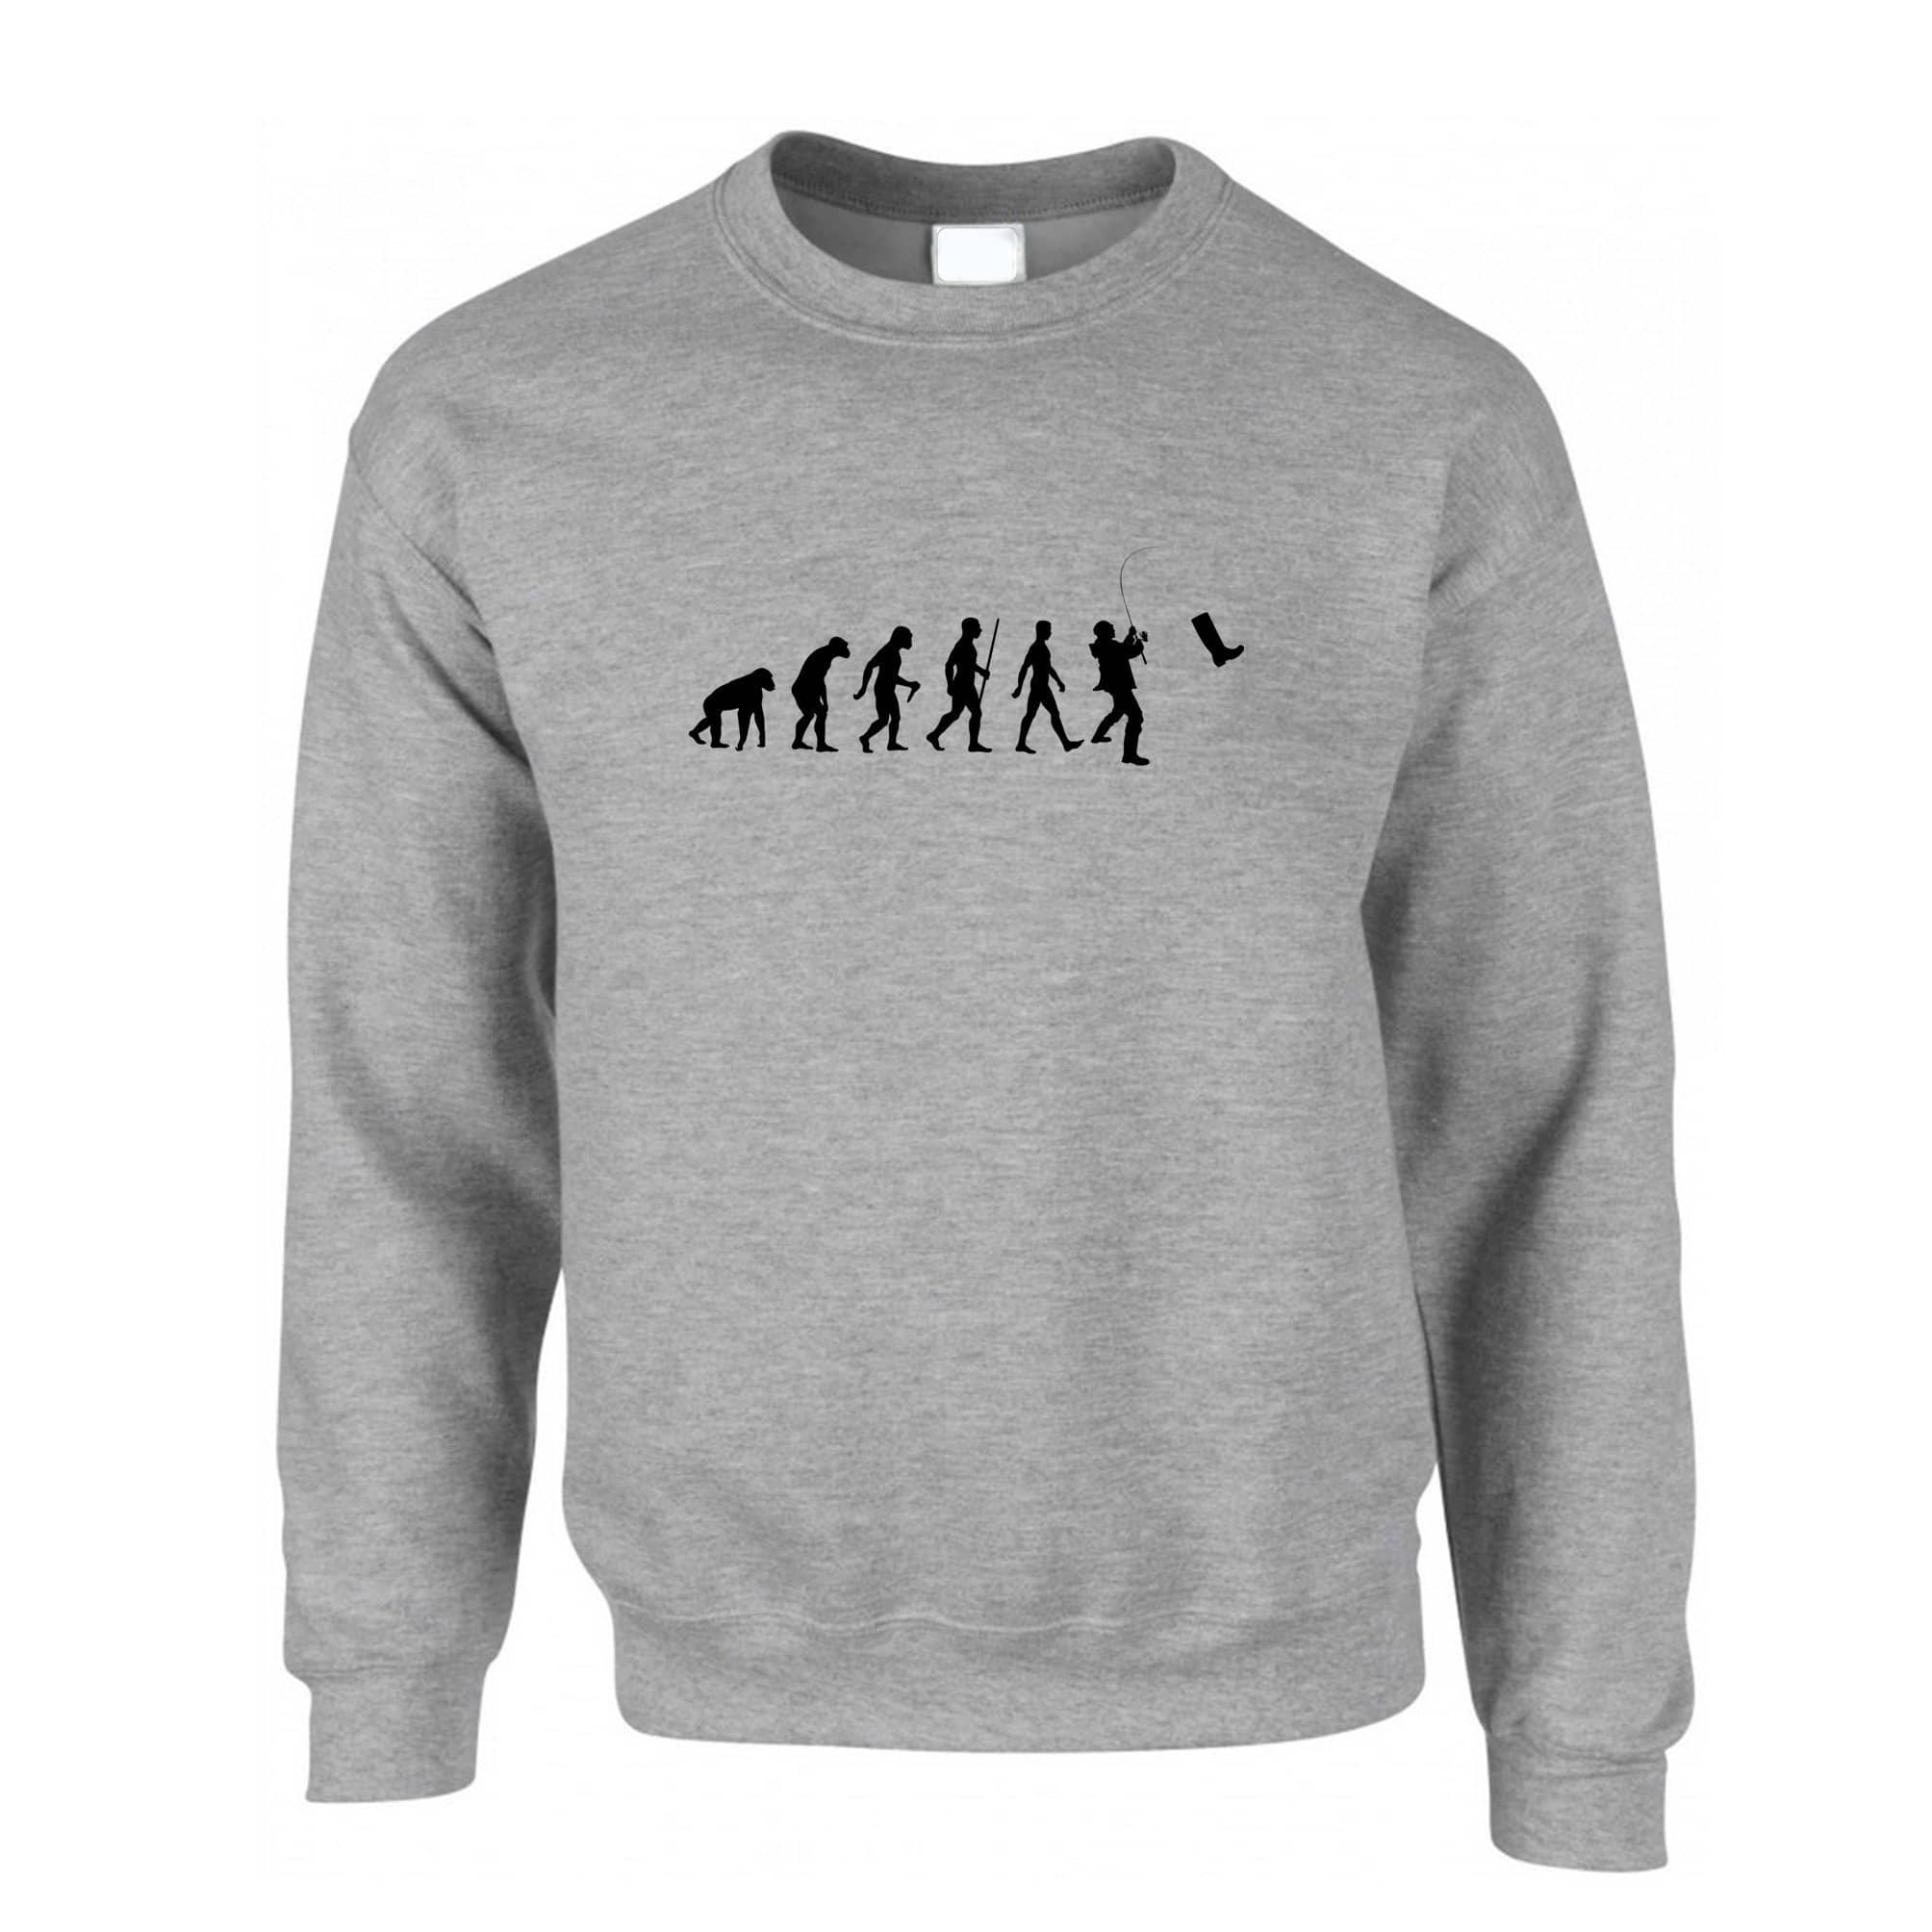 Fisherman Jumper The Evolution Of Fishing Boot Sweatshirt Sweater